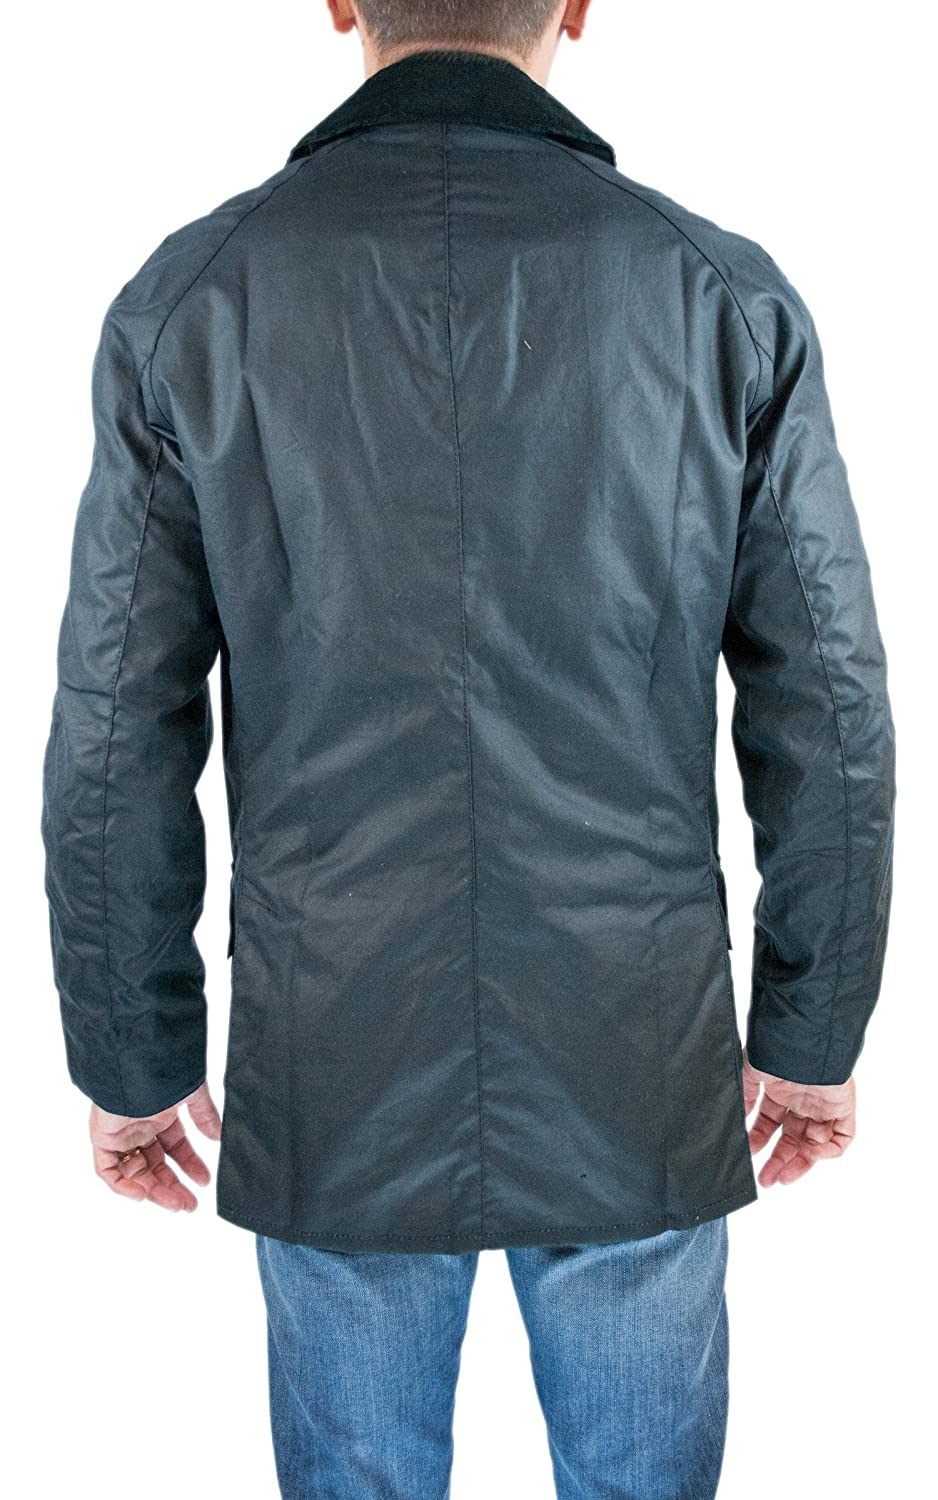 Barbour - Chaqueta - para Hombre Turquesa Small: Amazon.es ...